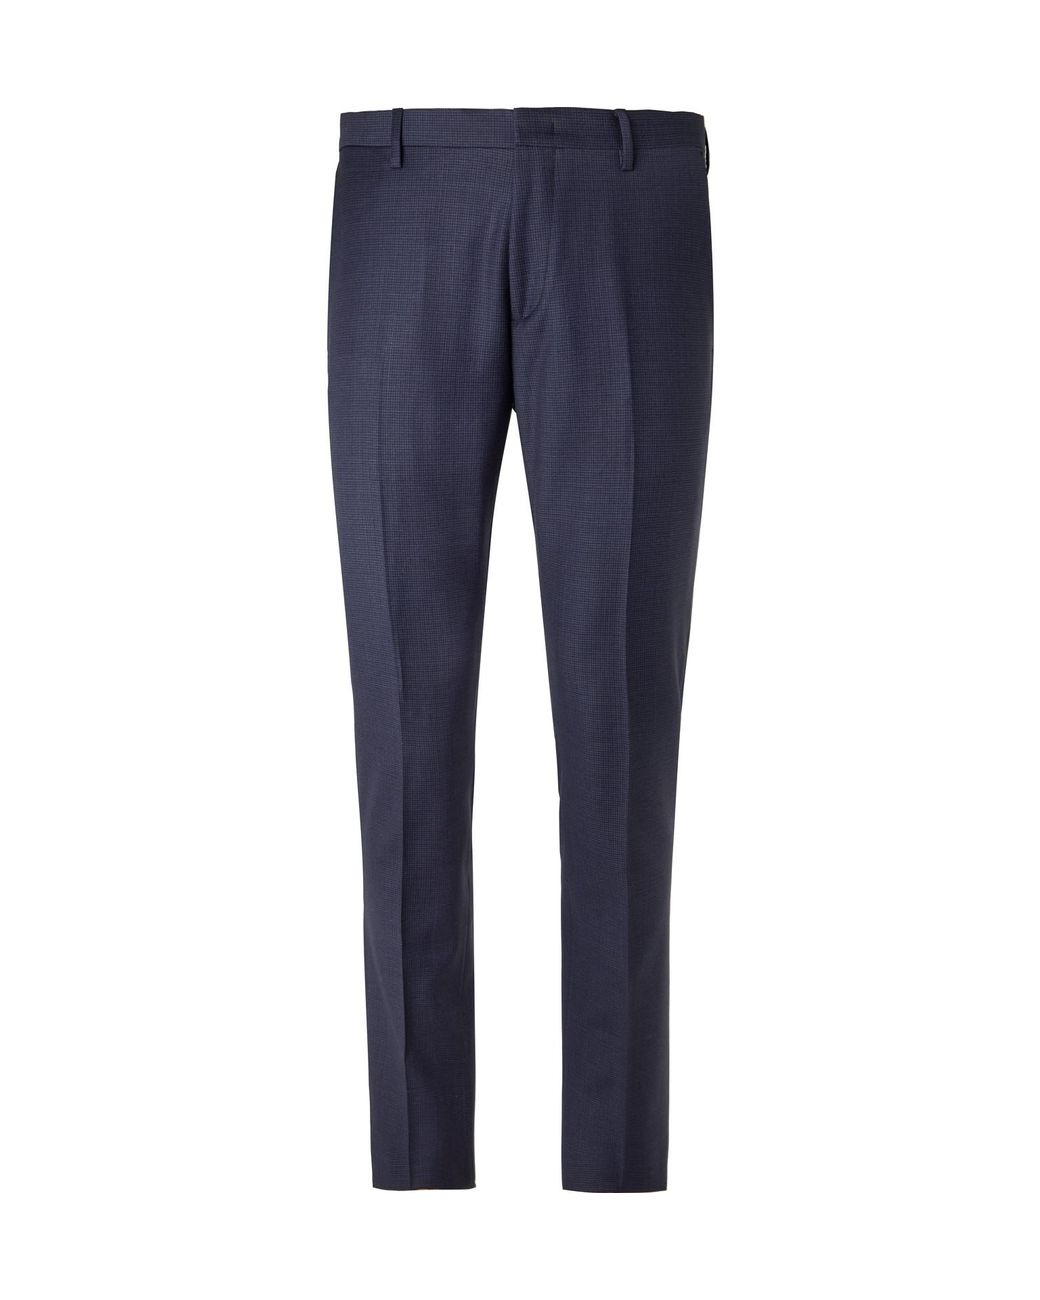 9af131df Paul Smith Navy Soho Slim-fit Puppytooth Wool Suit Trousers in Blue for Men  - Lyst